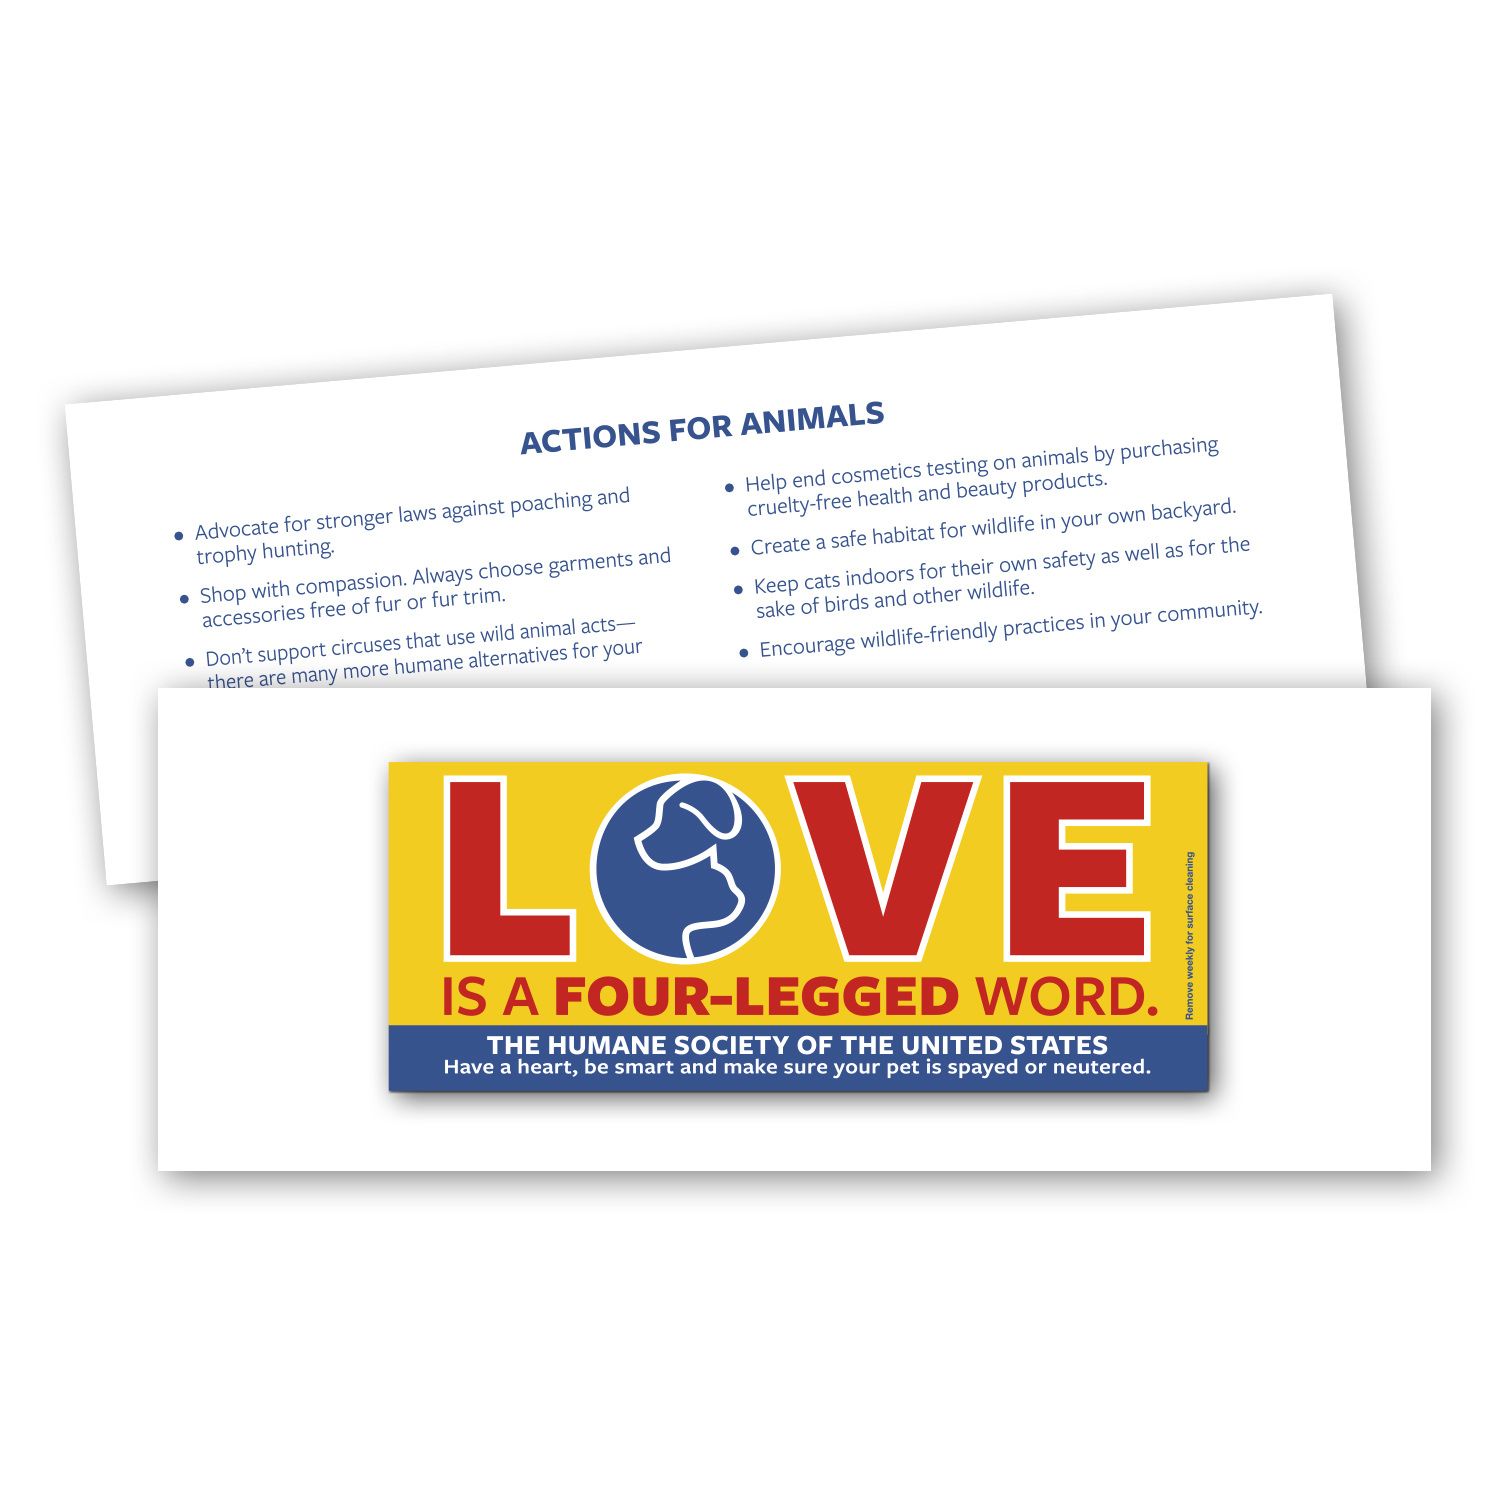 """• RMCST Romance Card, 4.125"""" x 10.875"""", 8 pt. with CSCST020 Custom Car Magnet, 2.8125"""" x 7"""", .030 thickness  • 250,000 car magnets were tipped onto card, inserted into envelopes, and mailed to donors."""